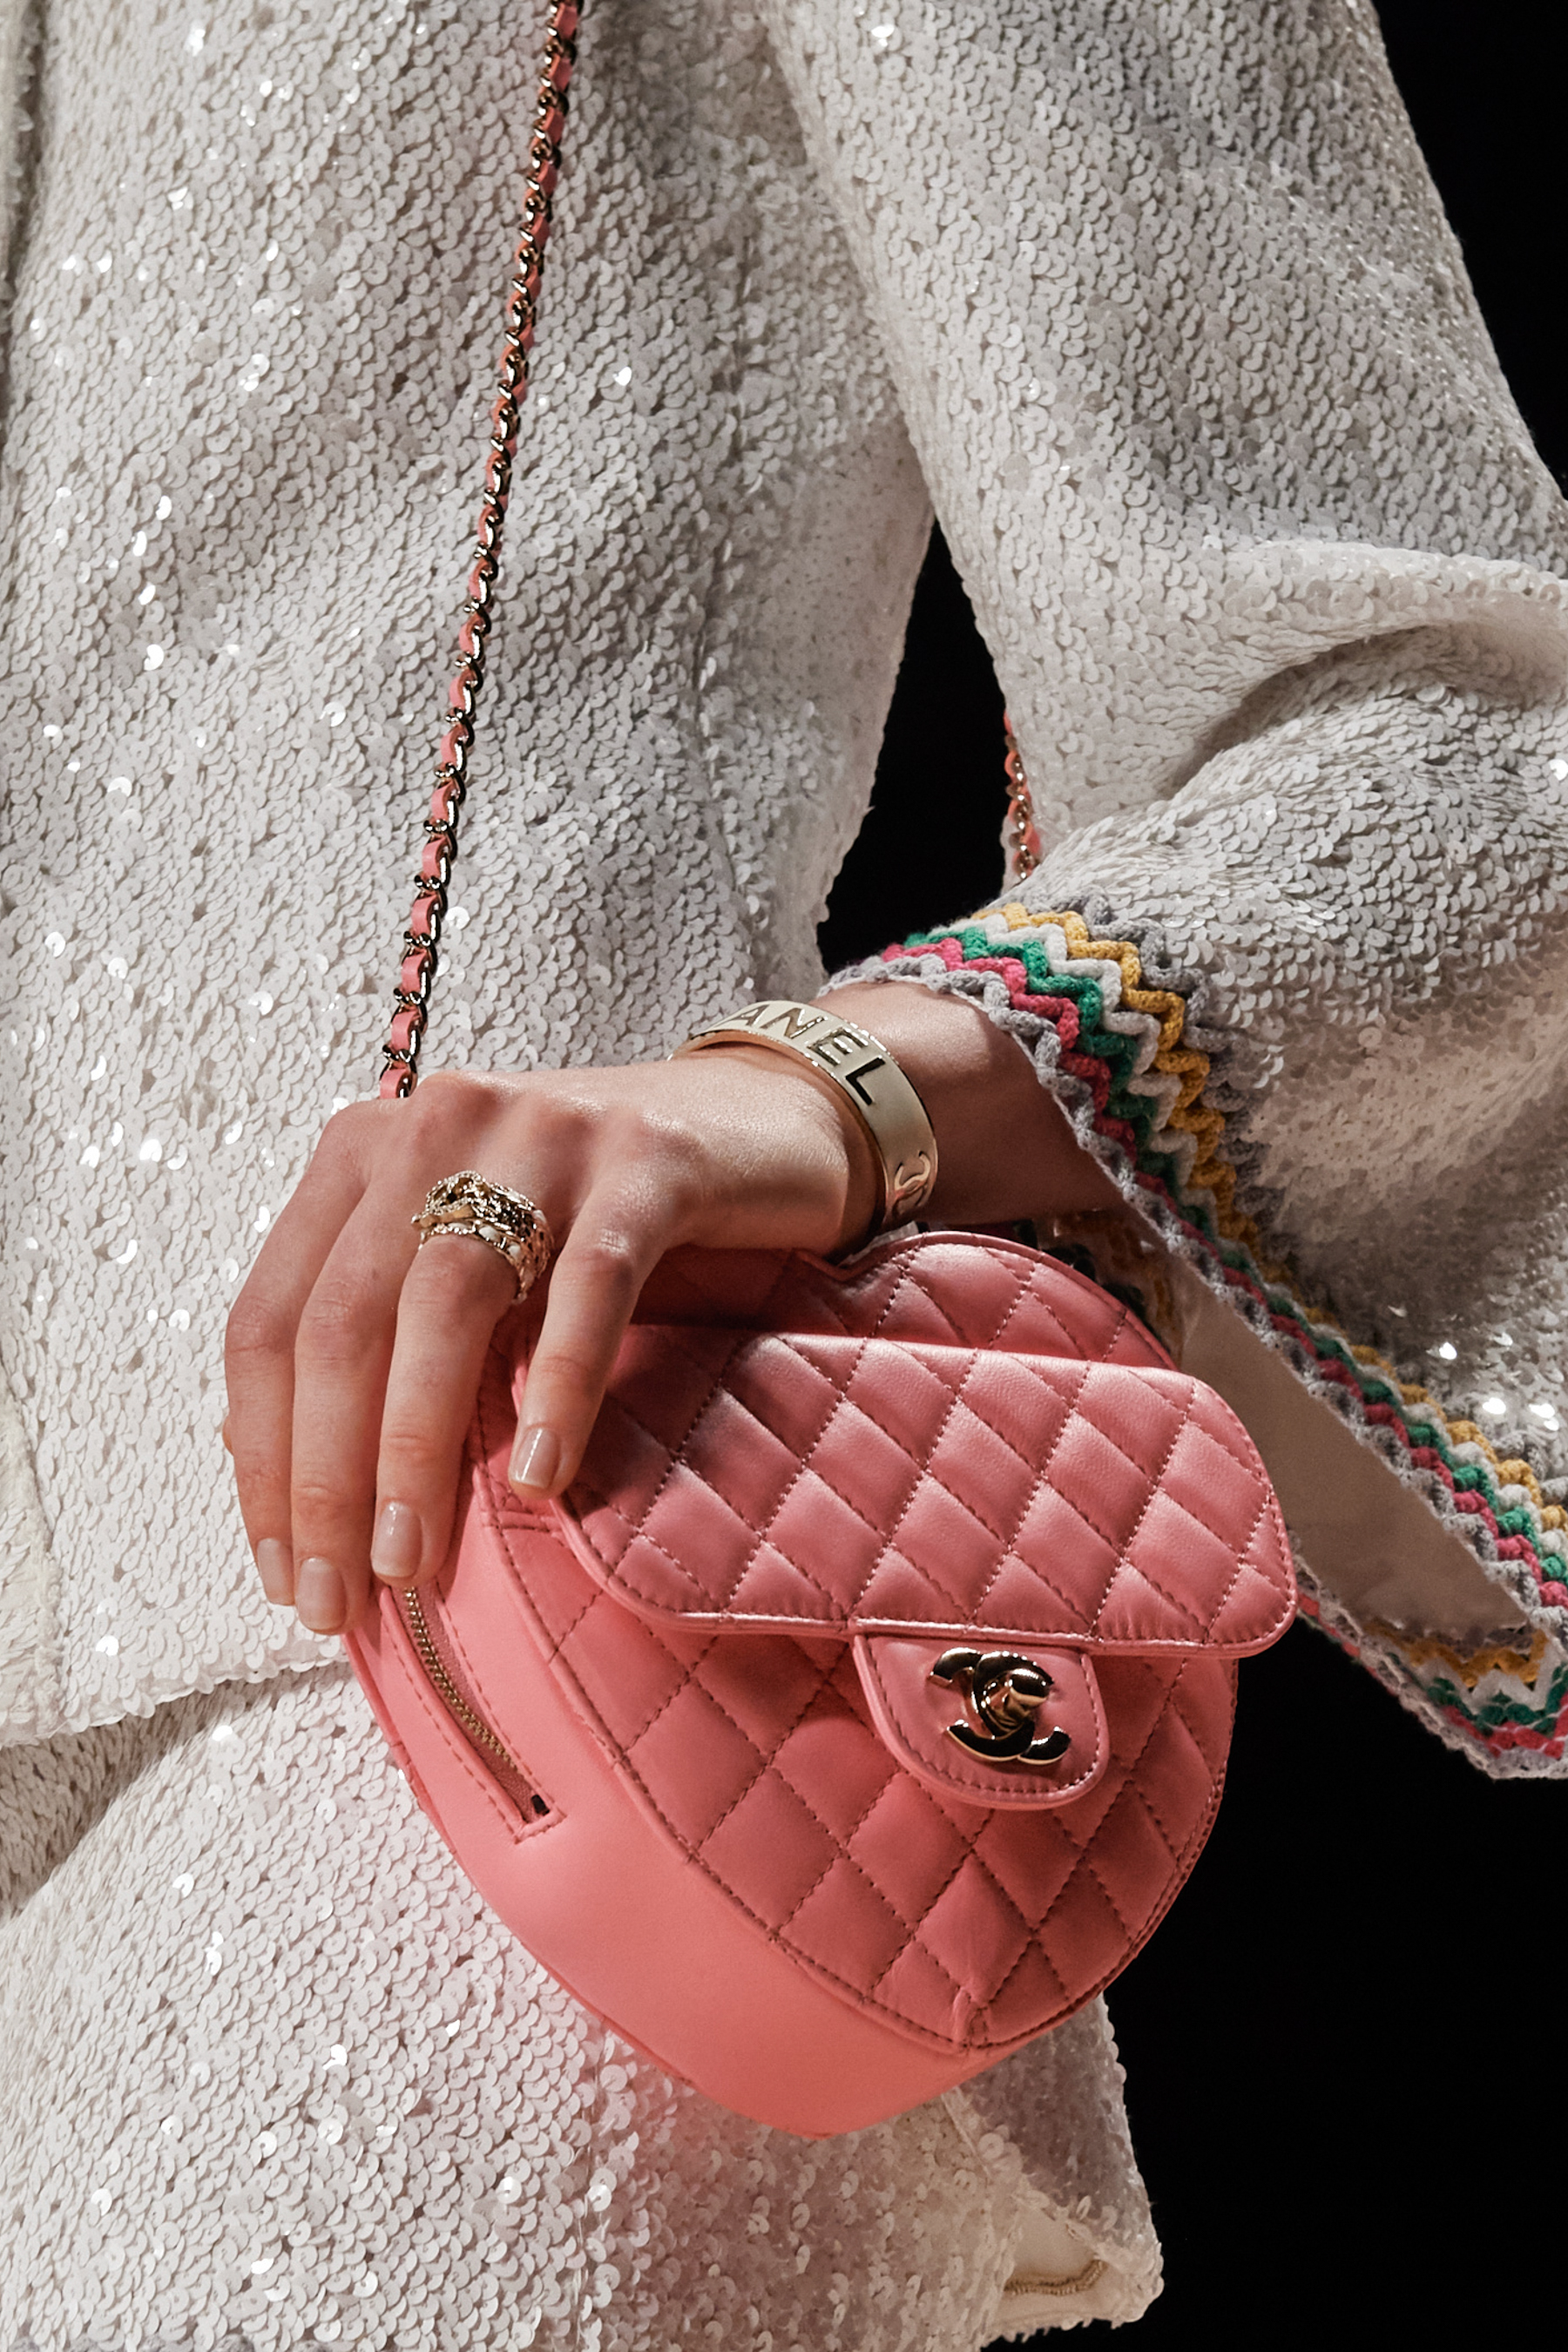 Chanel Spring 2022 Details Fashion Show